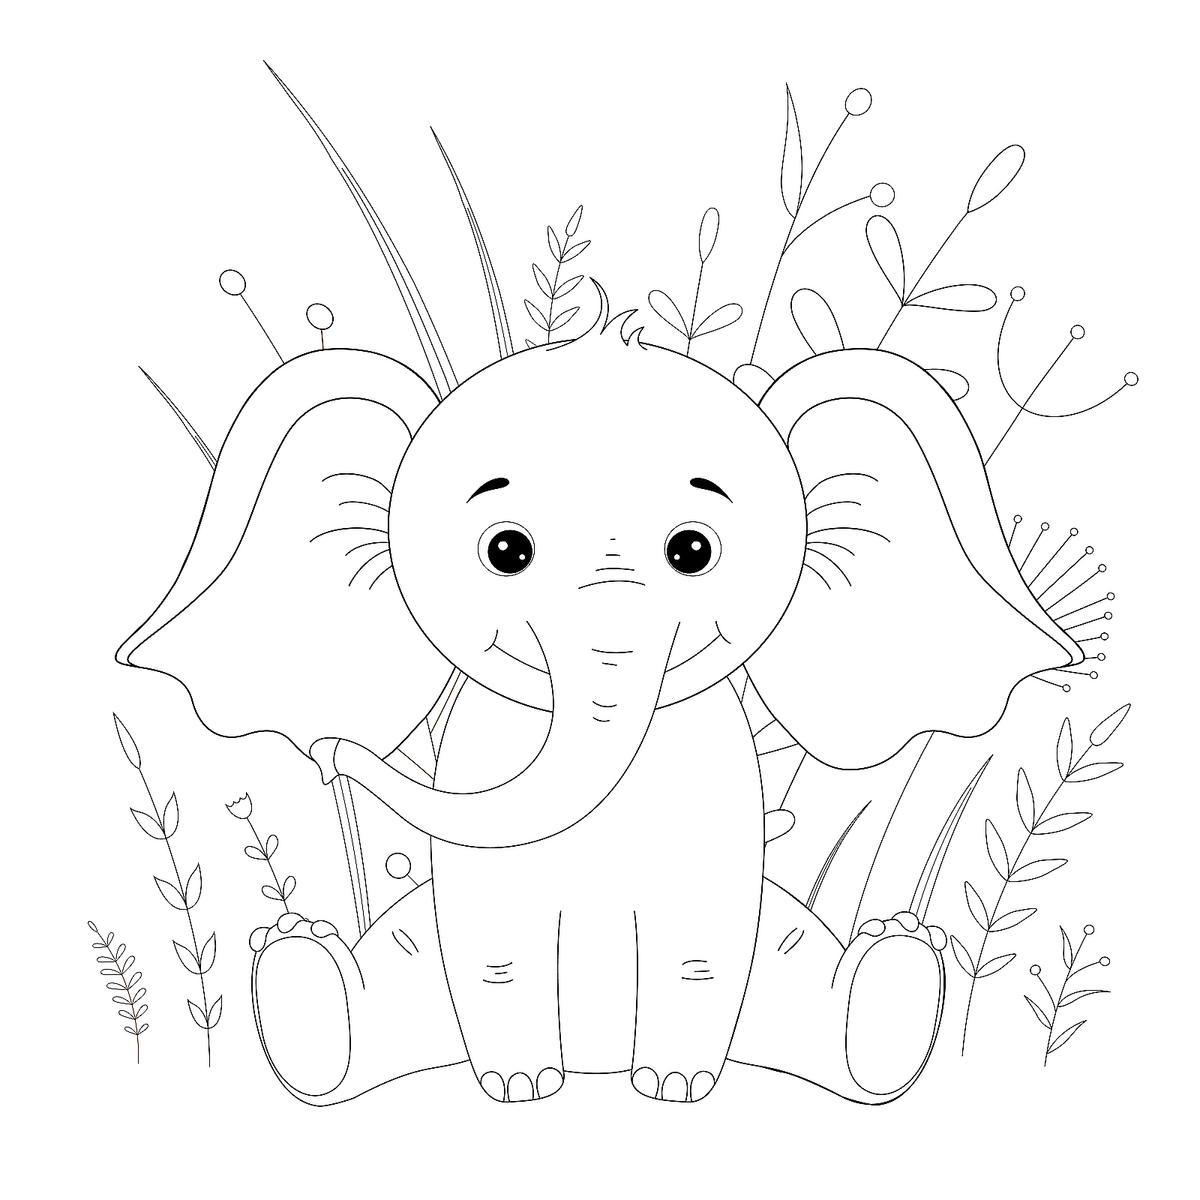 elephant coloring sheets printable elephant coloring pages 12 free fun printable elephant sheets printable elephant coloring